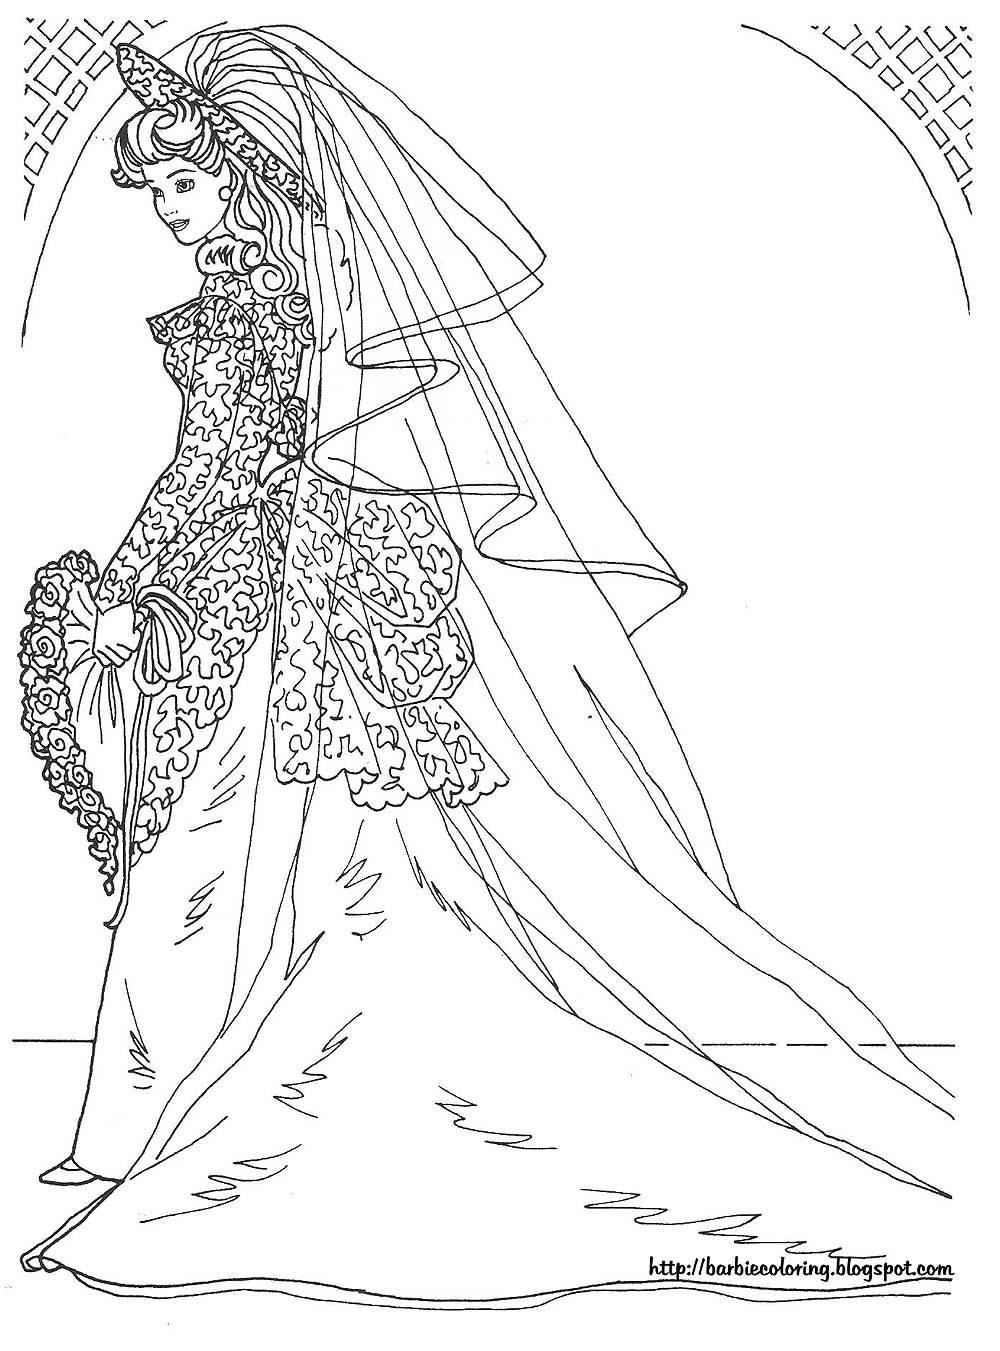 princess barbie coloring page - Barbie Coloring Page